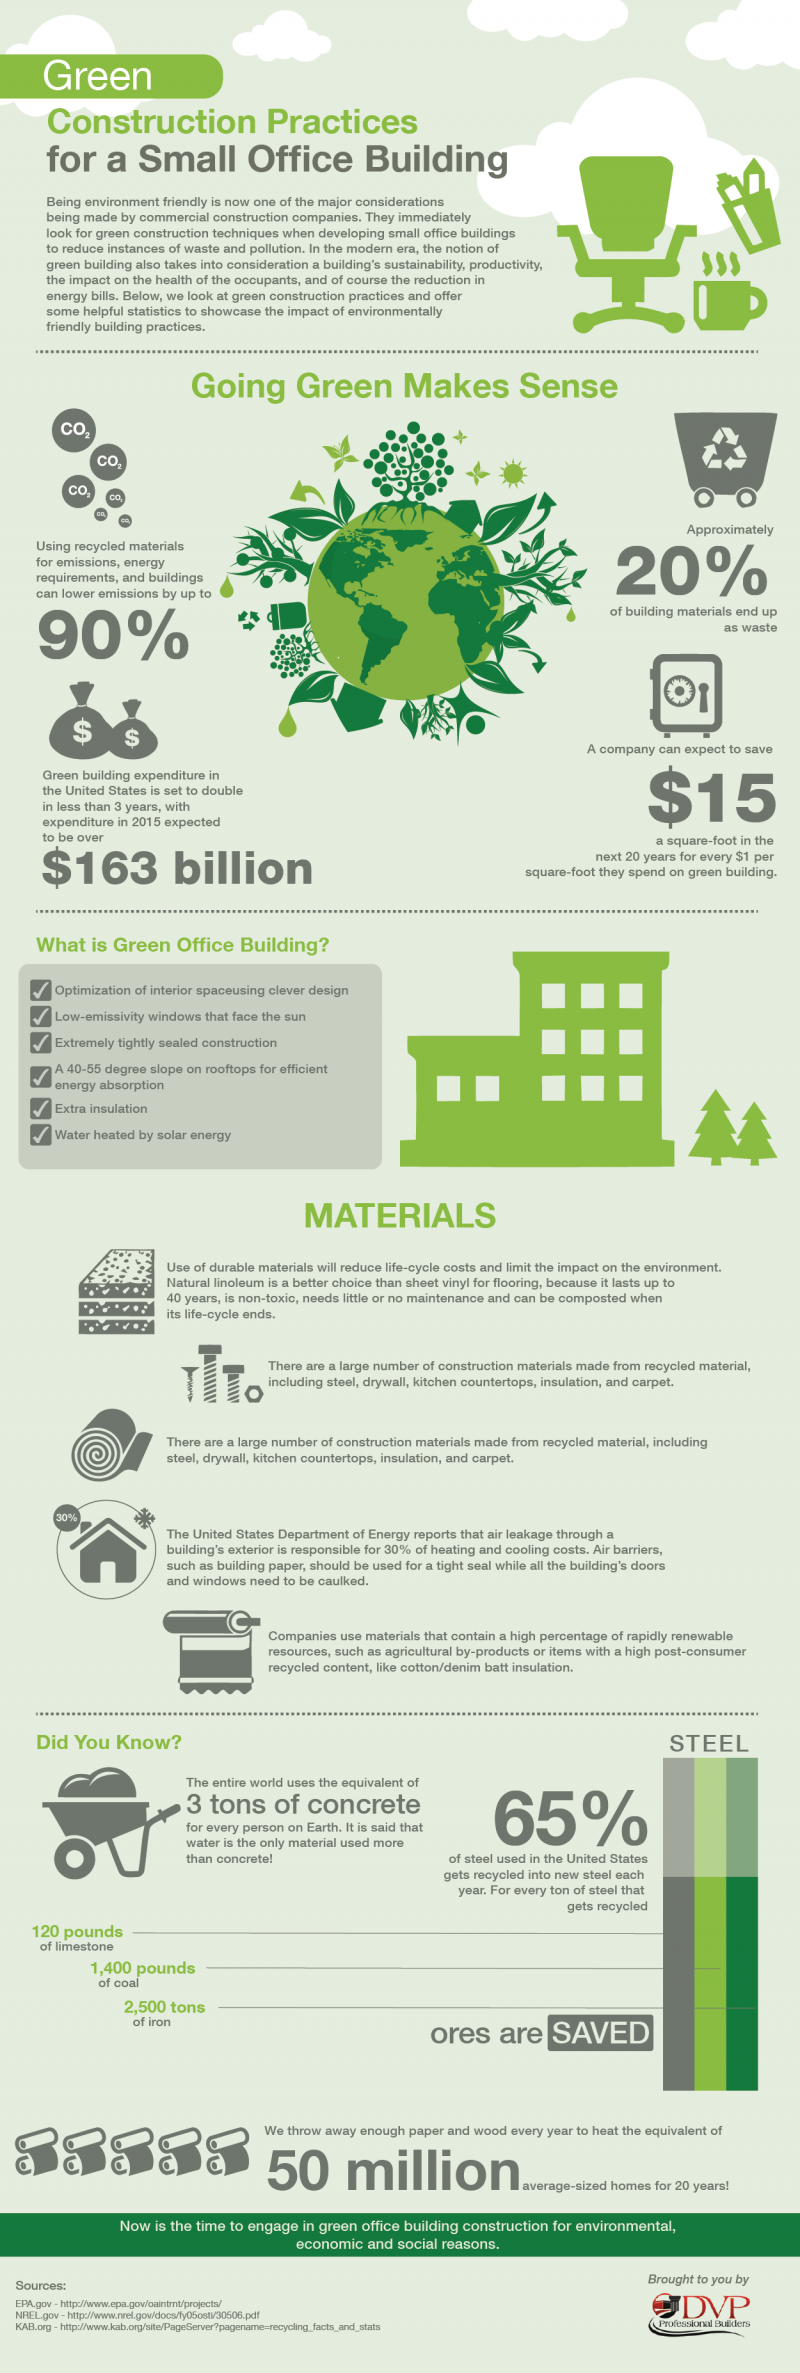 Green Construction Practices for a Small Office Building